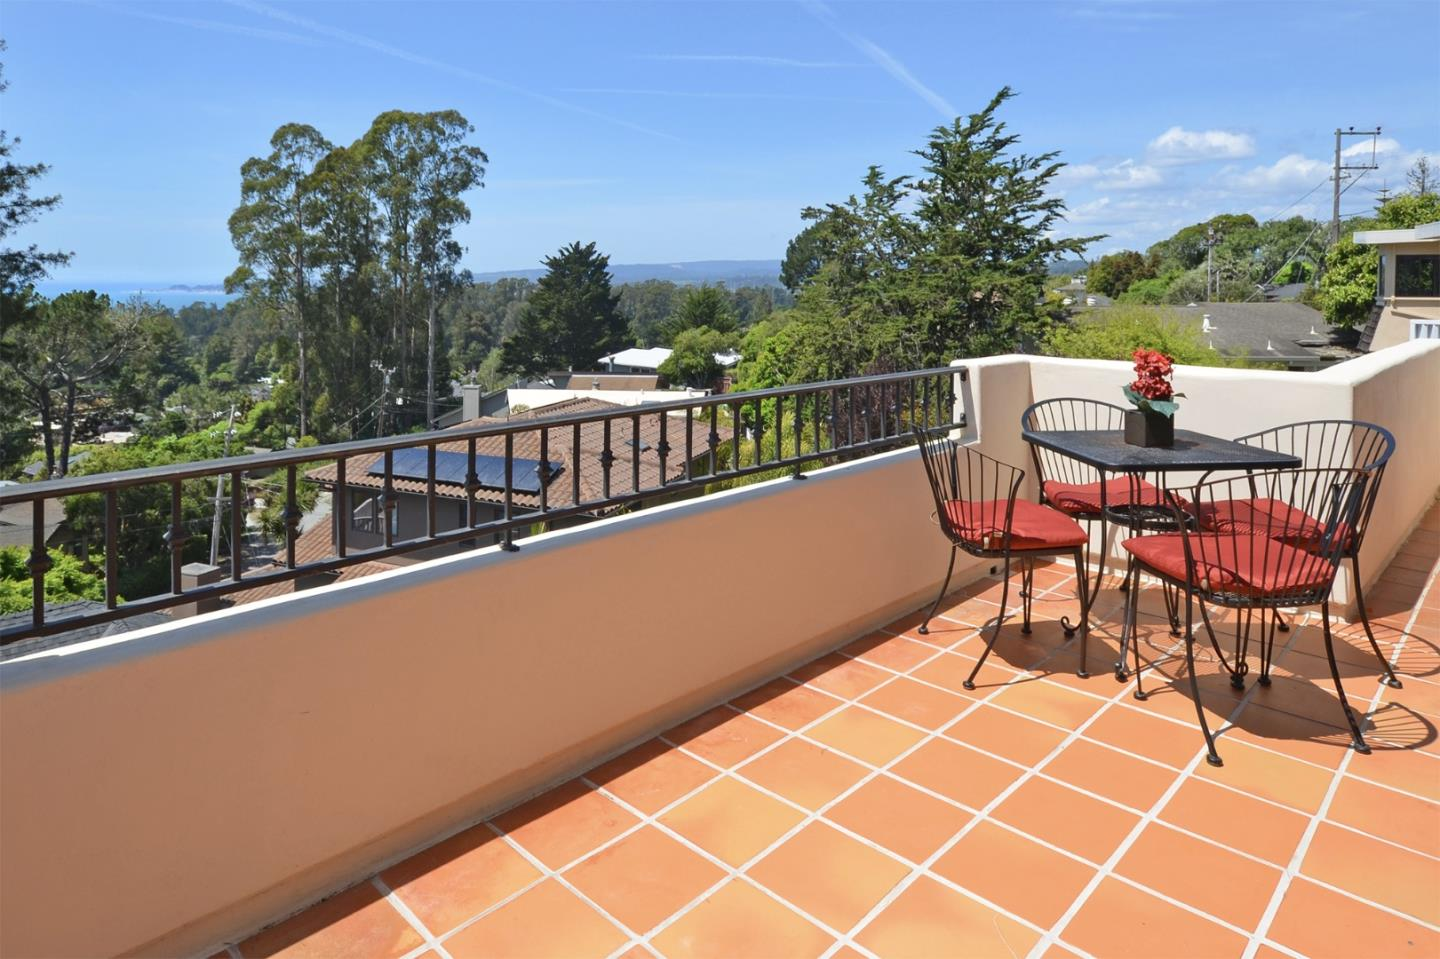 Additional photo for property listing at 534 Vista Del Mar  APTOS, CALIFORNIA 95003